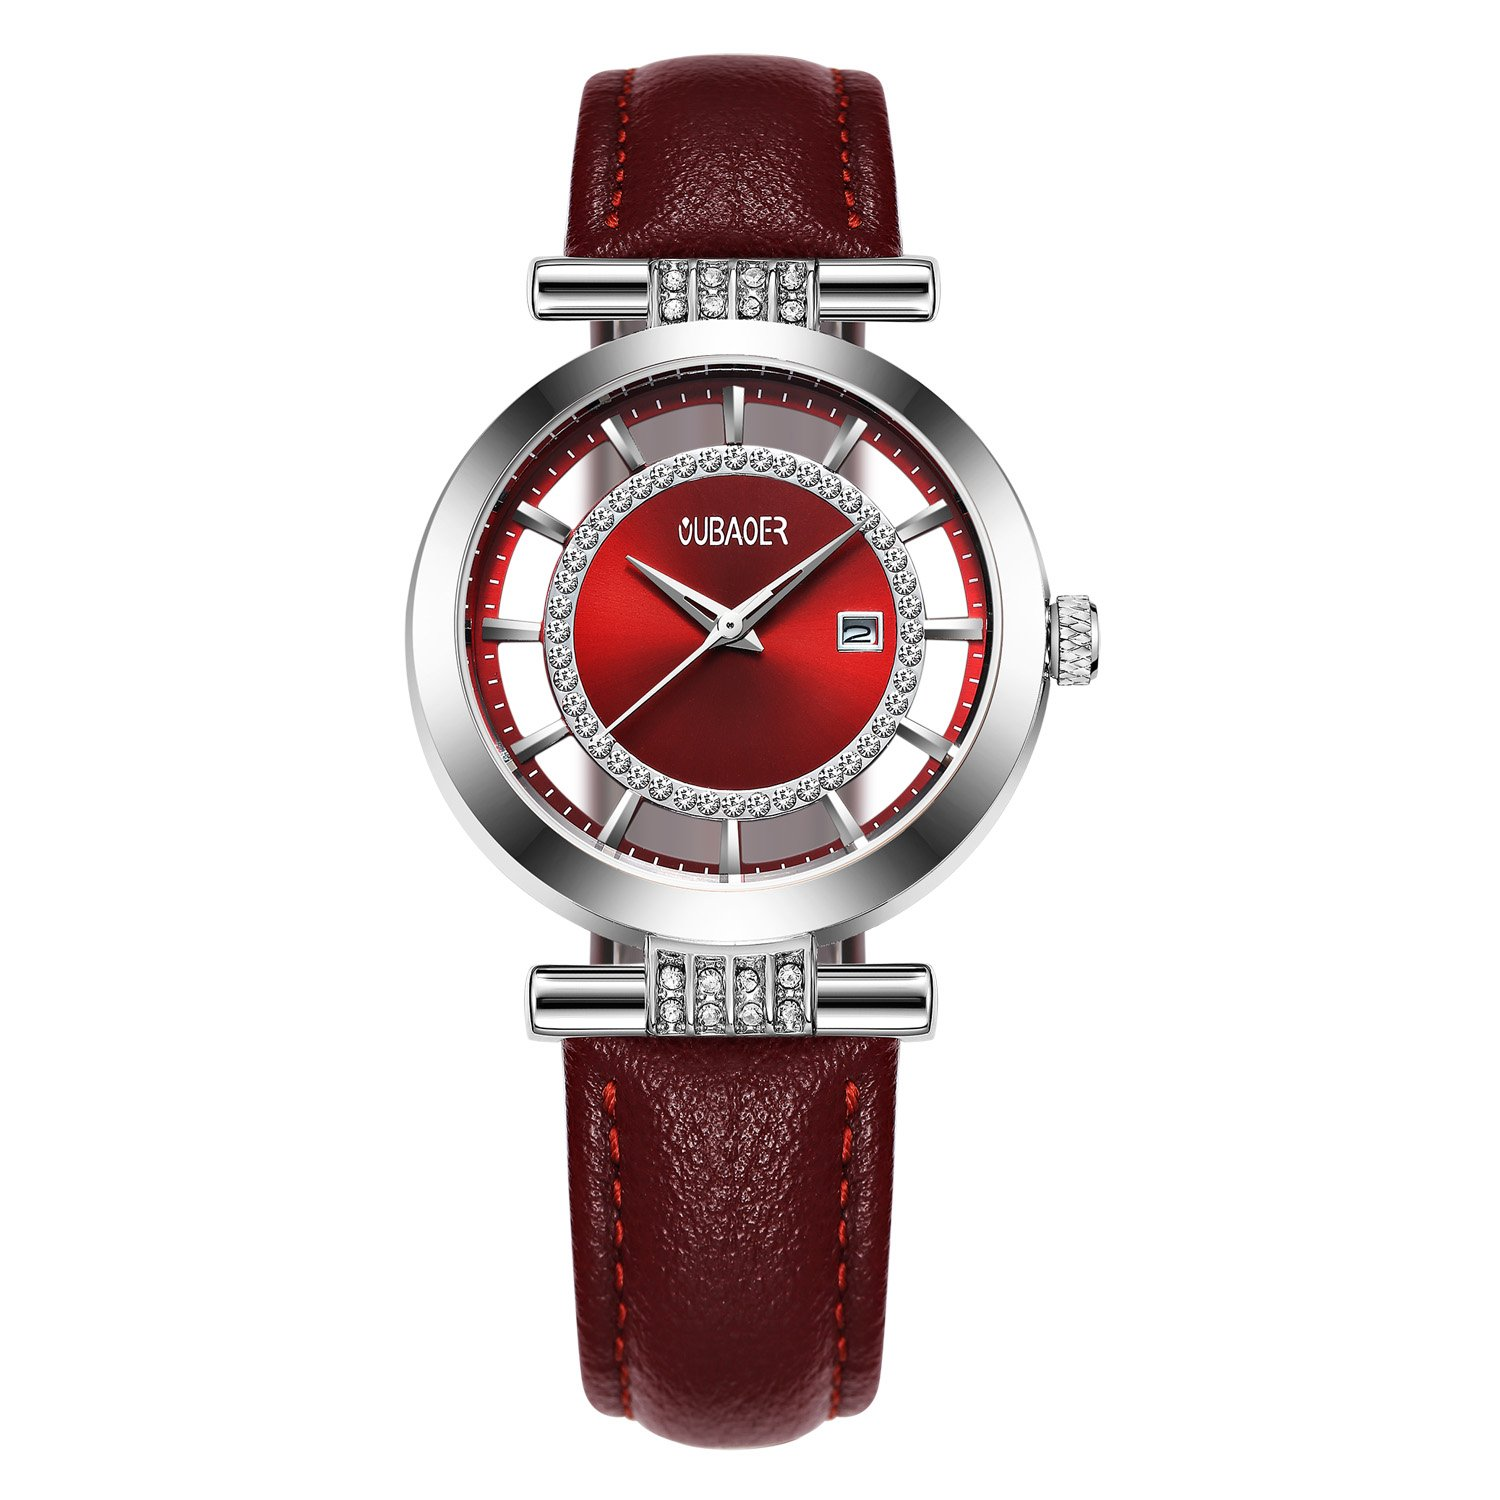 Womens Quartz Watch OUBAOER Crystal Accented Leather Band Watch for Women Transparent Watch with Date Lady Wristwatches for Business(Silver Red)